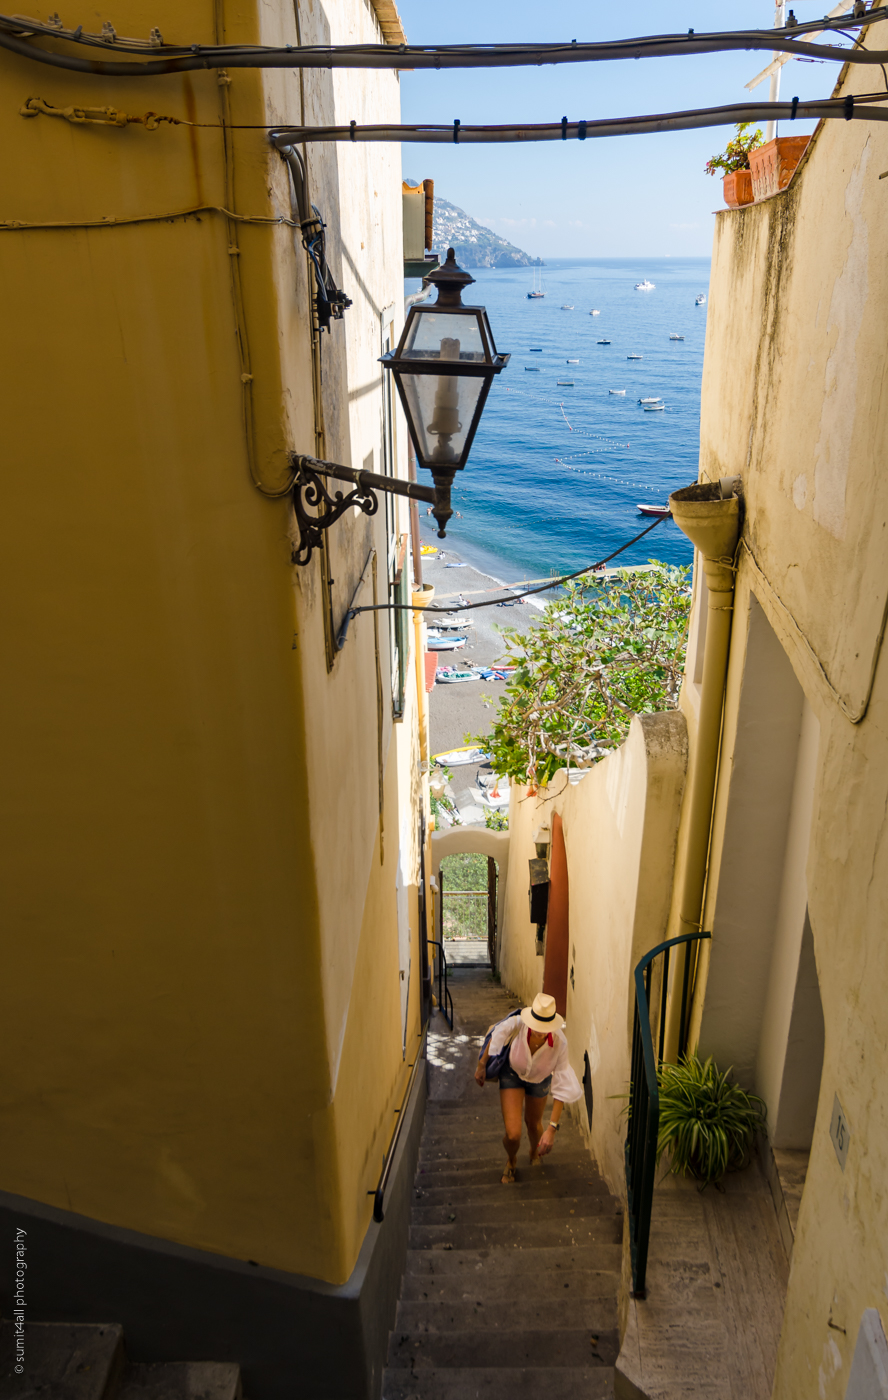 Narrow Stairs and Amazing Views in Positano, Italy